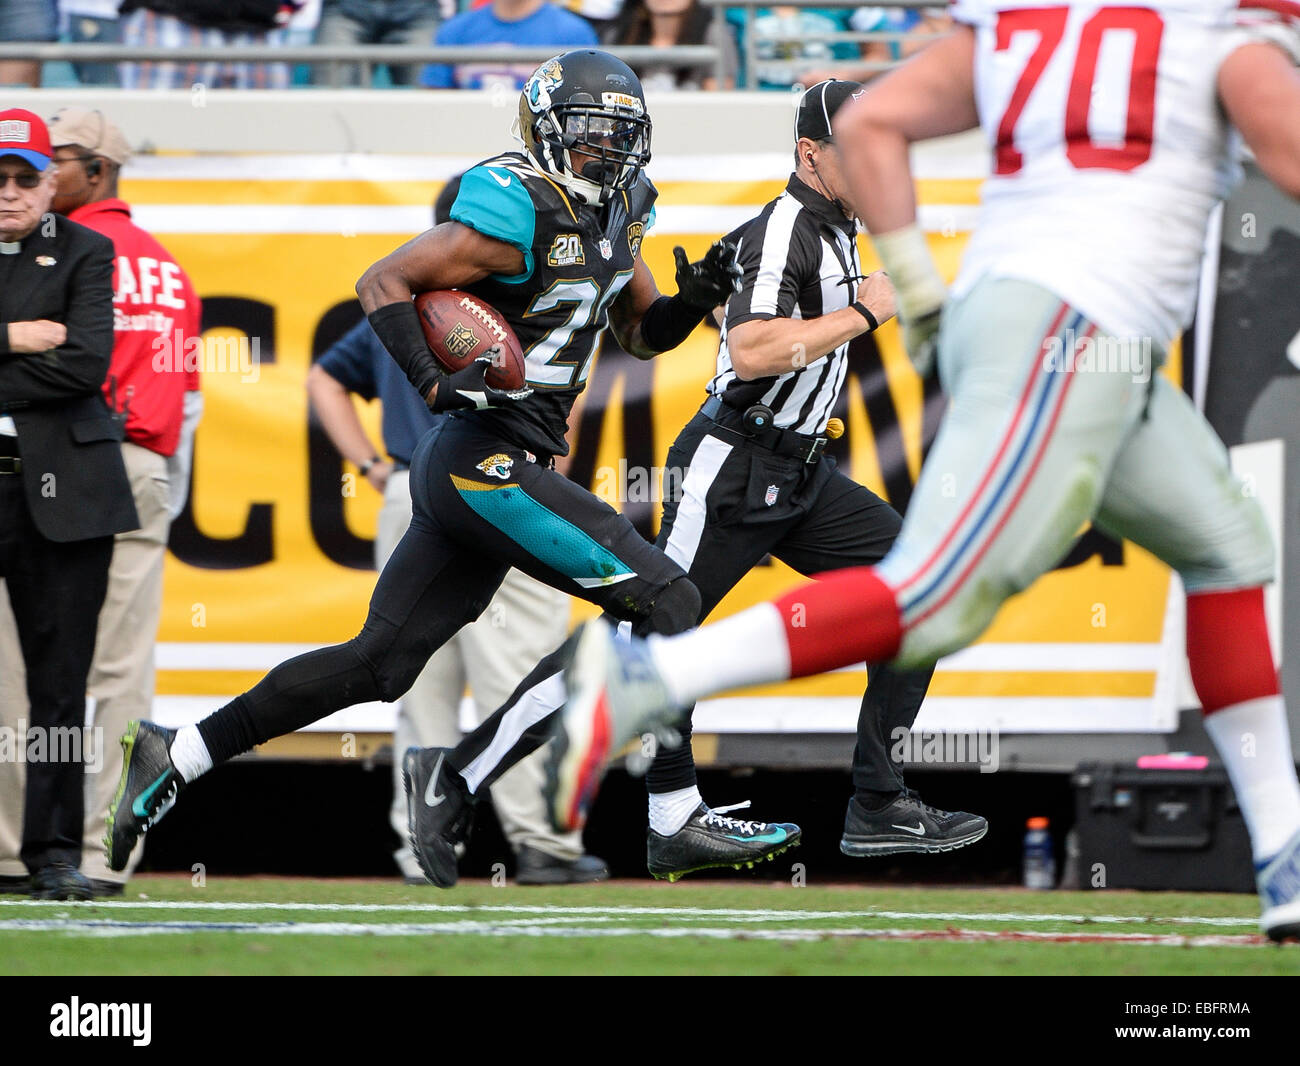 Jacksonville, FL, USA. 30th Nov, 2014. Jacksonville Jaguars cornerback Aaron Colvin (22) recovers a fumble by New - Stock Image